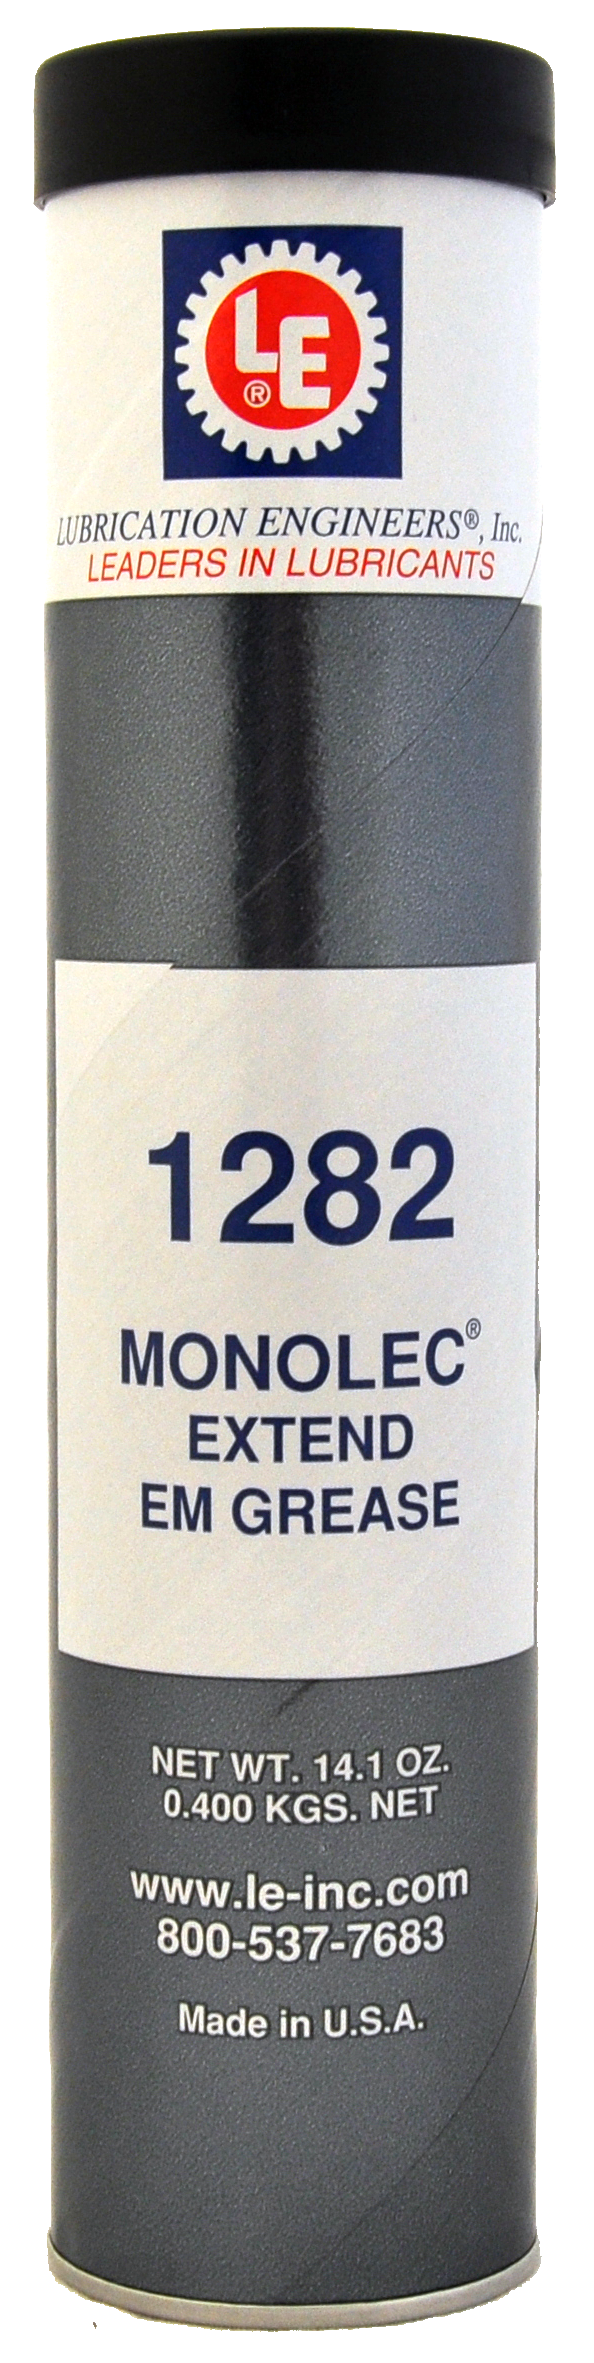 LE's Monolec Extend EM Grease (1282) is available in 14-oz tubes, as well  as in 35-lb pails and in Perma automatic lubricators.